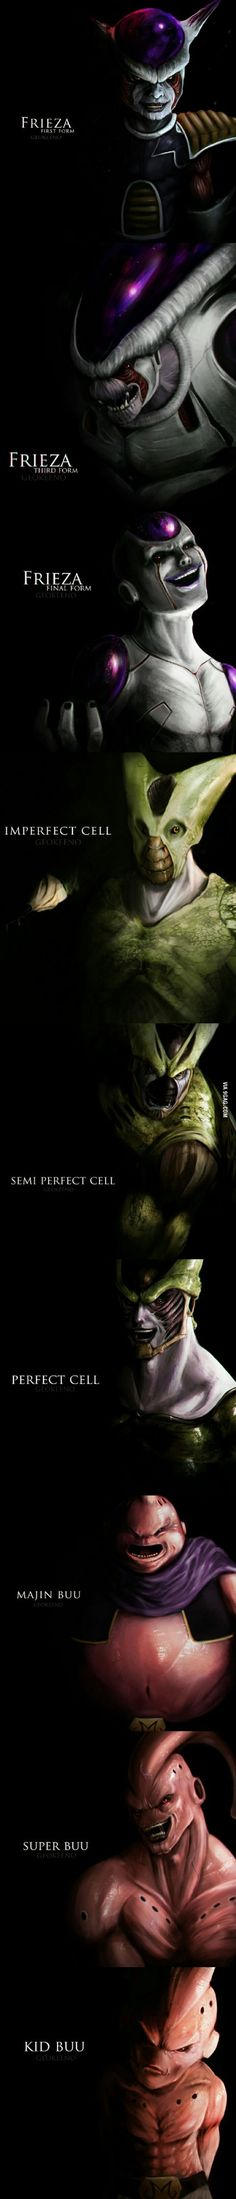 Badass DBZ Villains..... I never thought they'd look that scary....